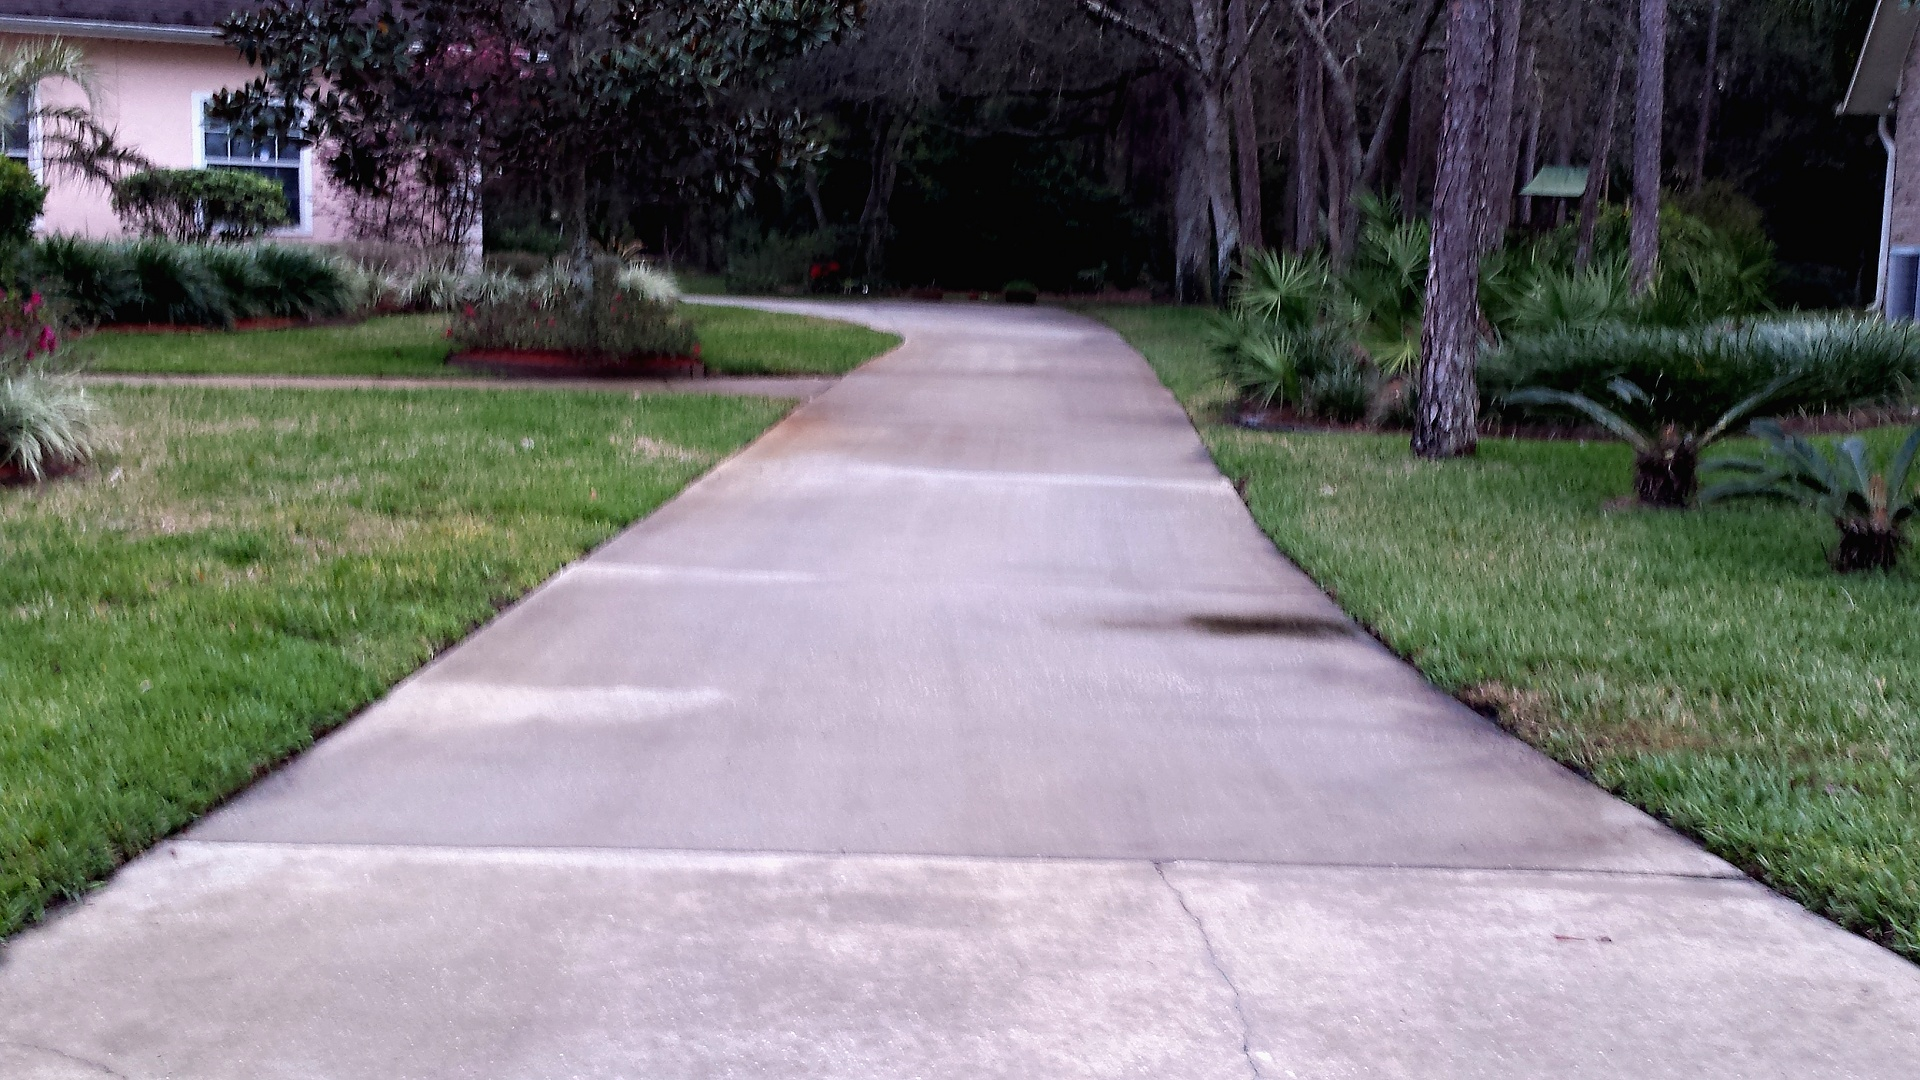 pressure-cleaning-ormond-beach-12-1080p.jpg